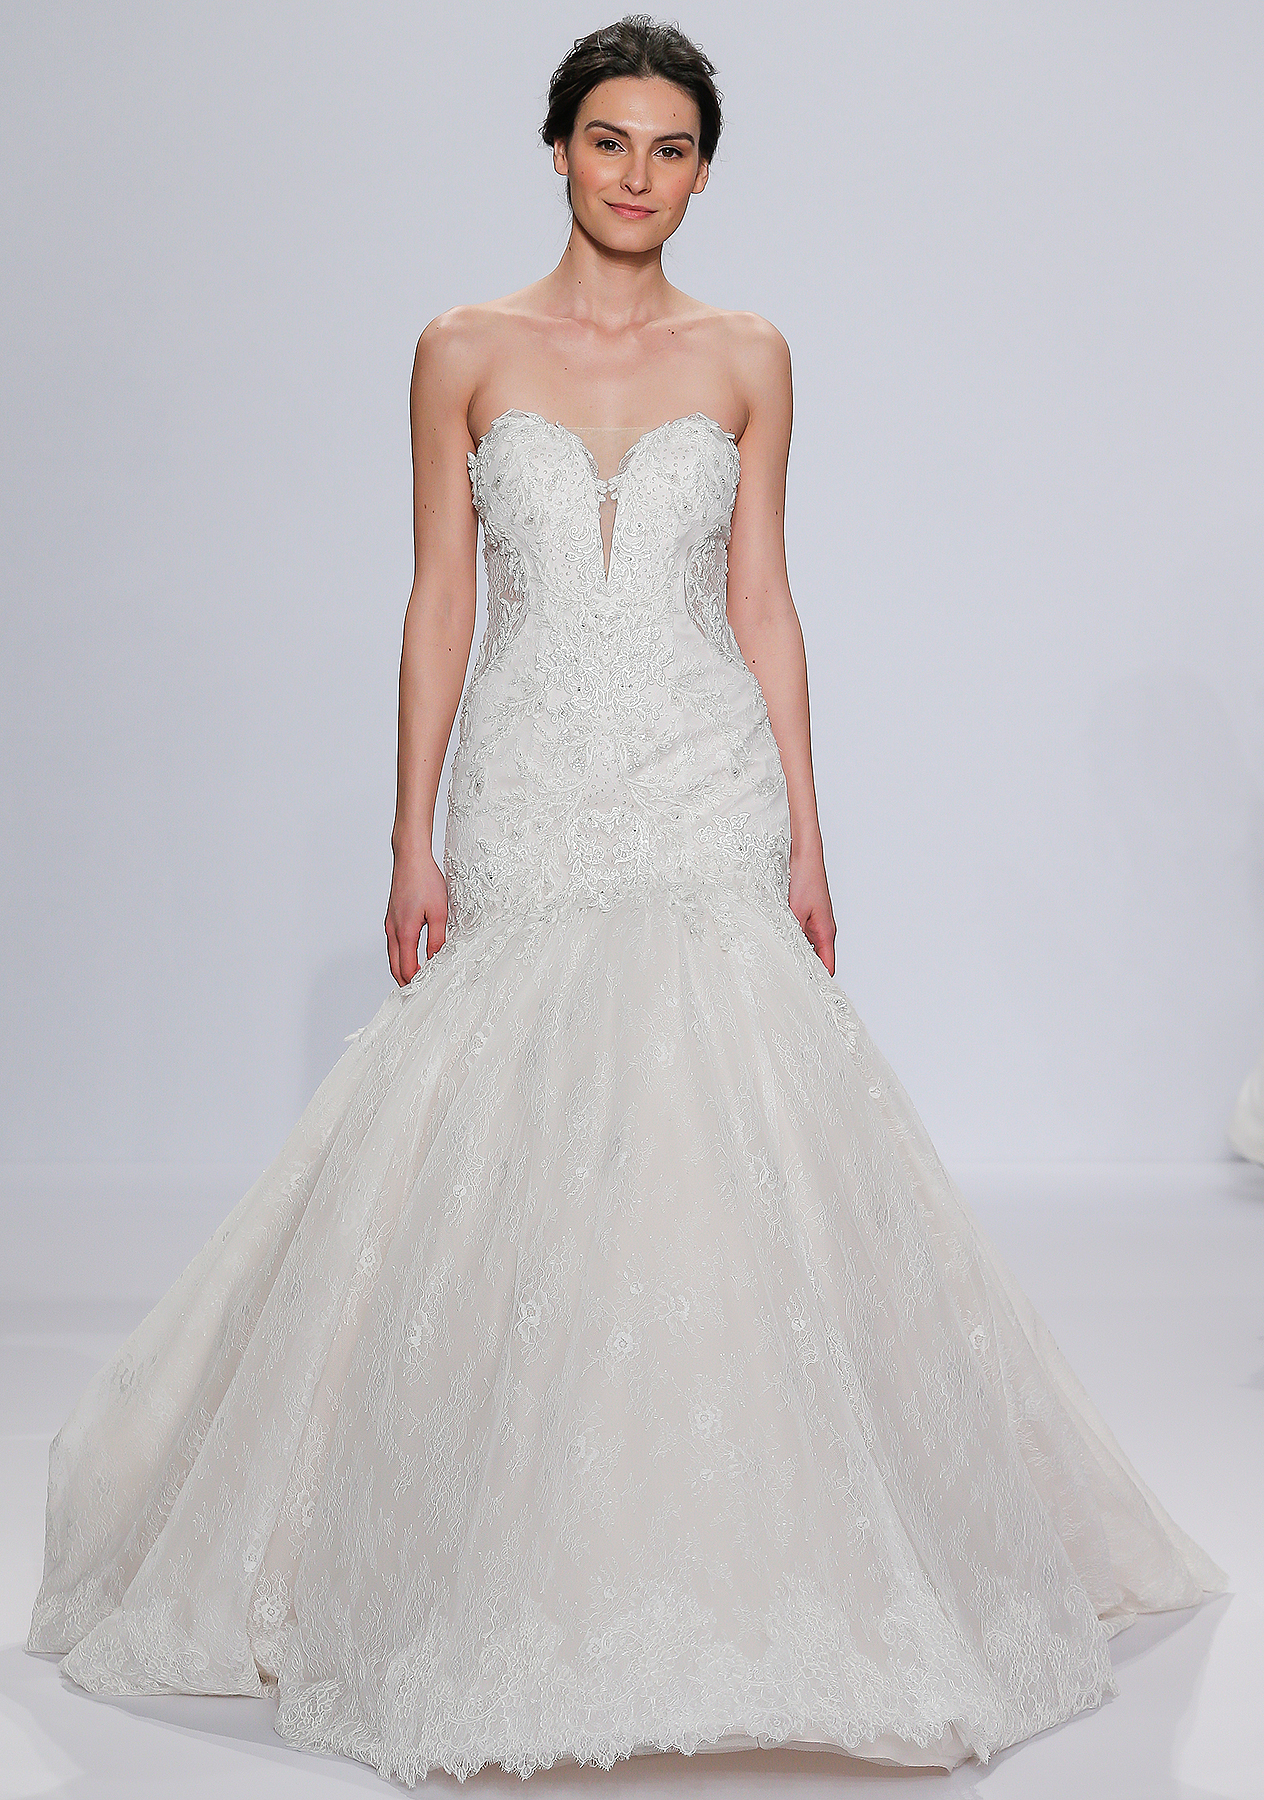 Randy Fenoli Collection